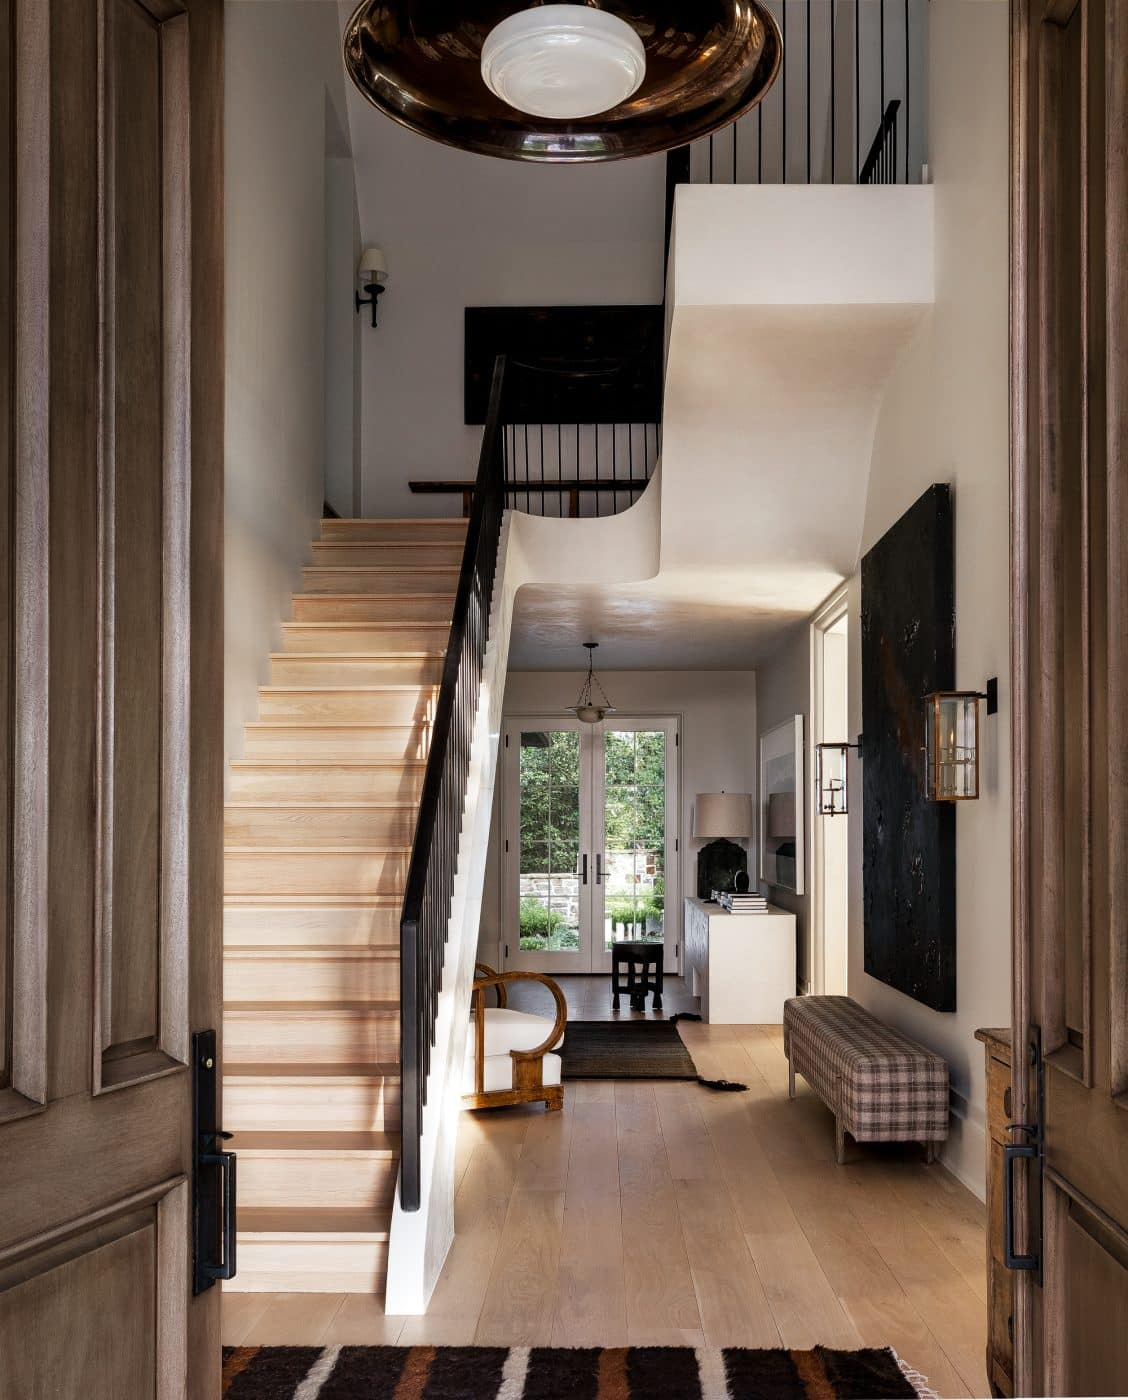 Foyer designed by Sean Anderson